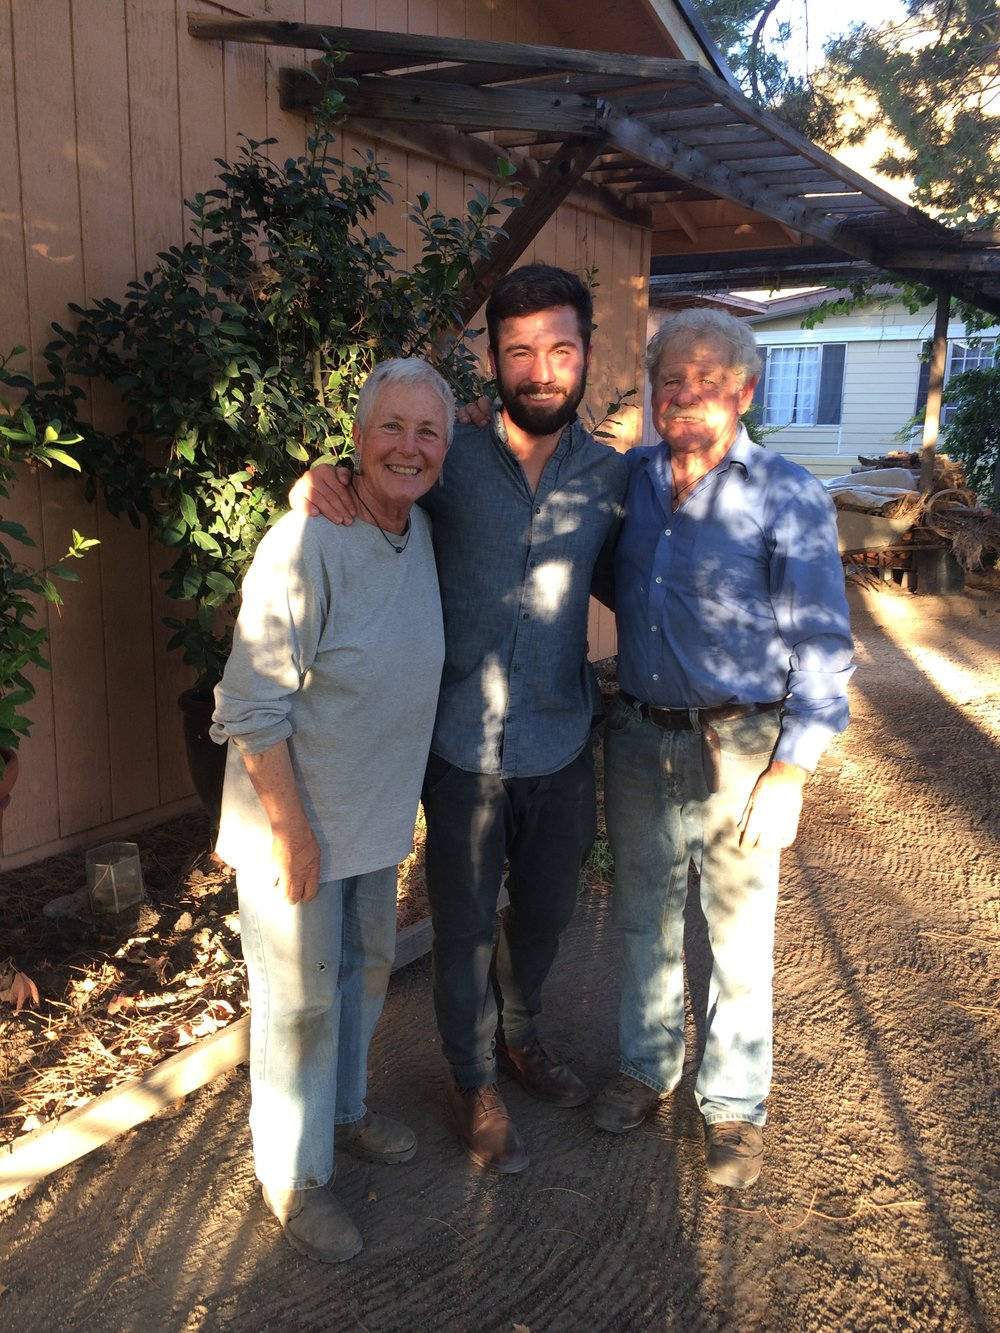 Me with Bill and Barbara at Windrose Farm in California. Two amazing farmers, mentors and friends.